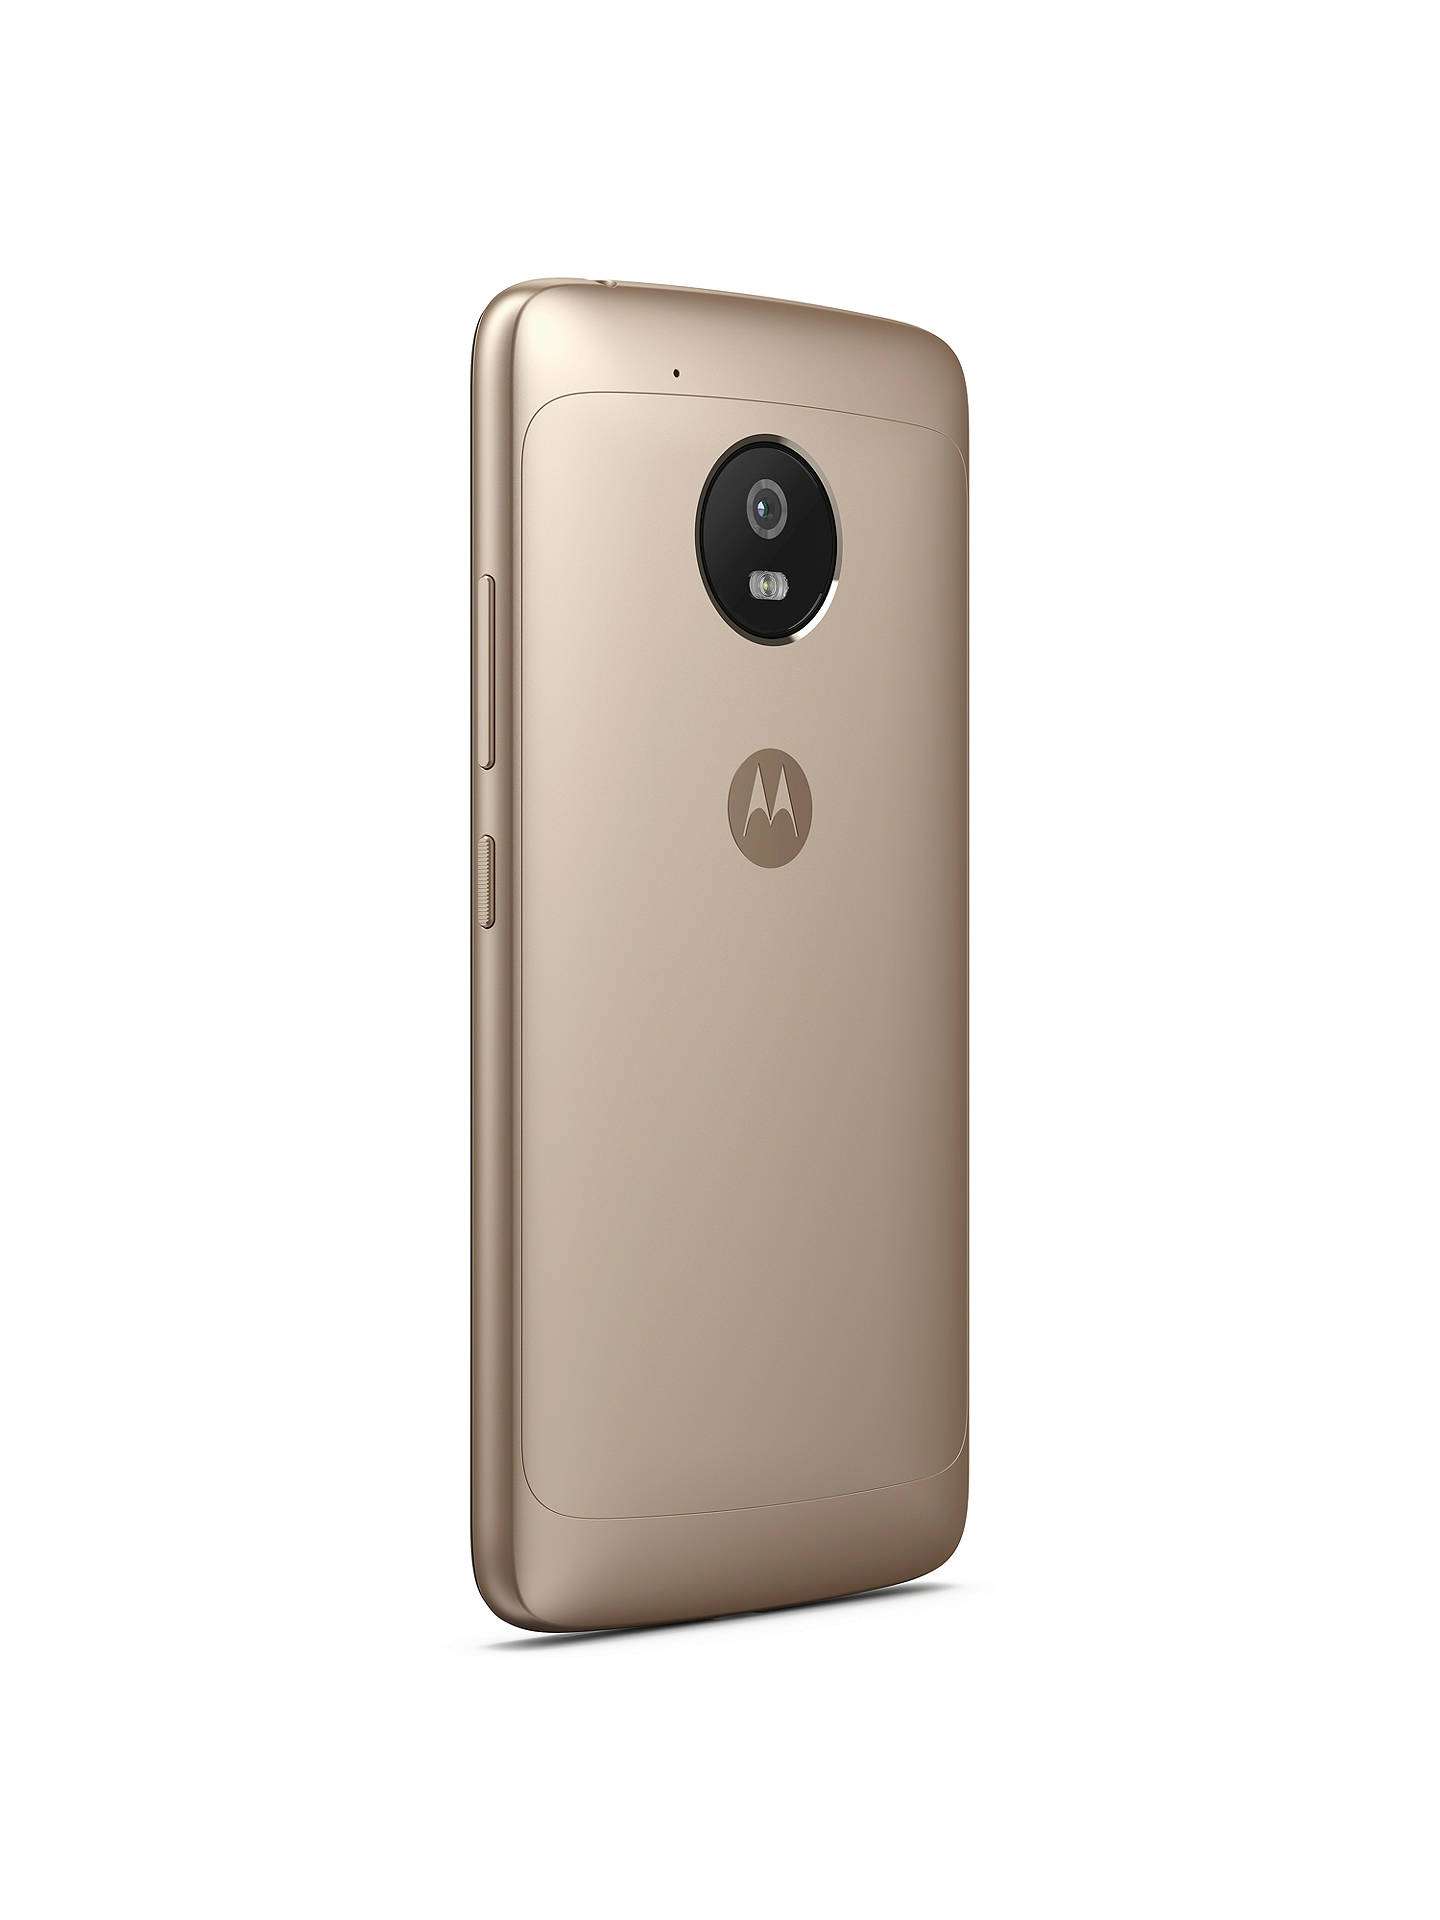 "Buy Motorola g5 Smartphone, Android, 5"", 4G LTE, SIM Free, 16GB, Gold Online at johnlewis.com"